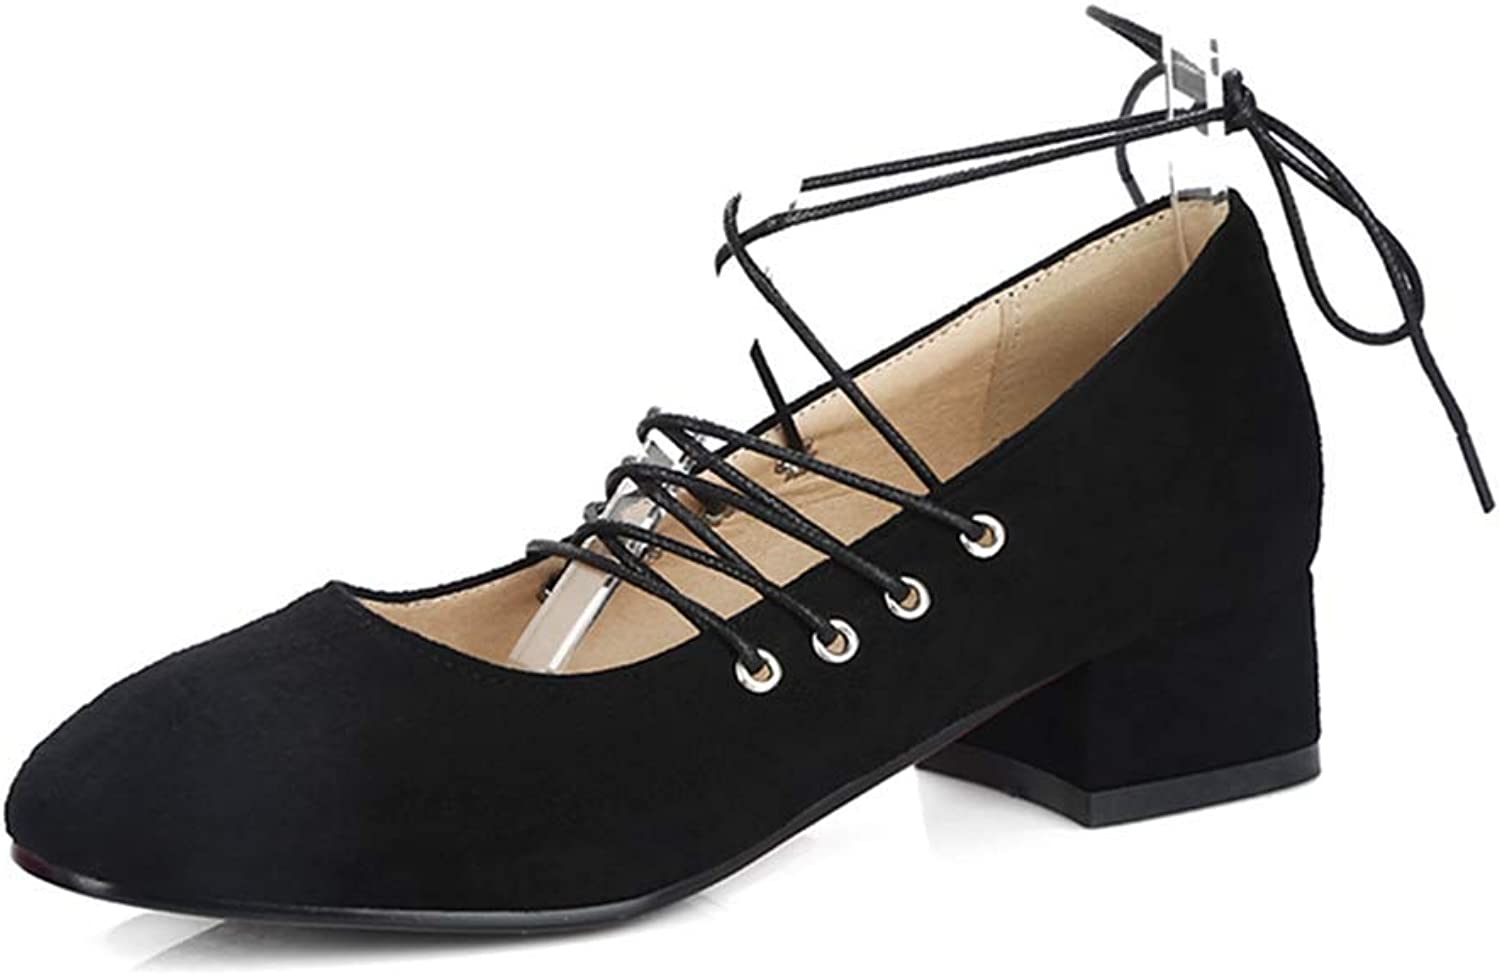 Beautiful - Fashion Women's Mary Jane Lace Up Oxford Pump Square Toe Suede Low Heel Retro Uniform Fall Dress Loafer shoes